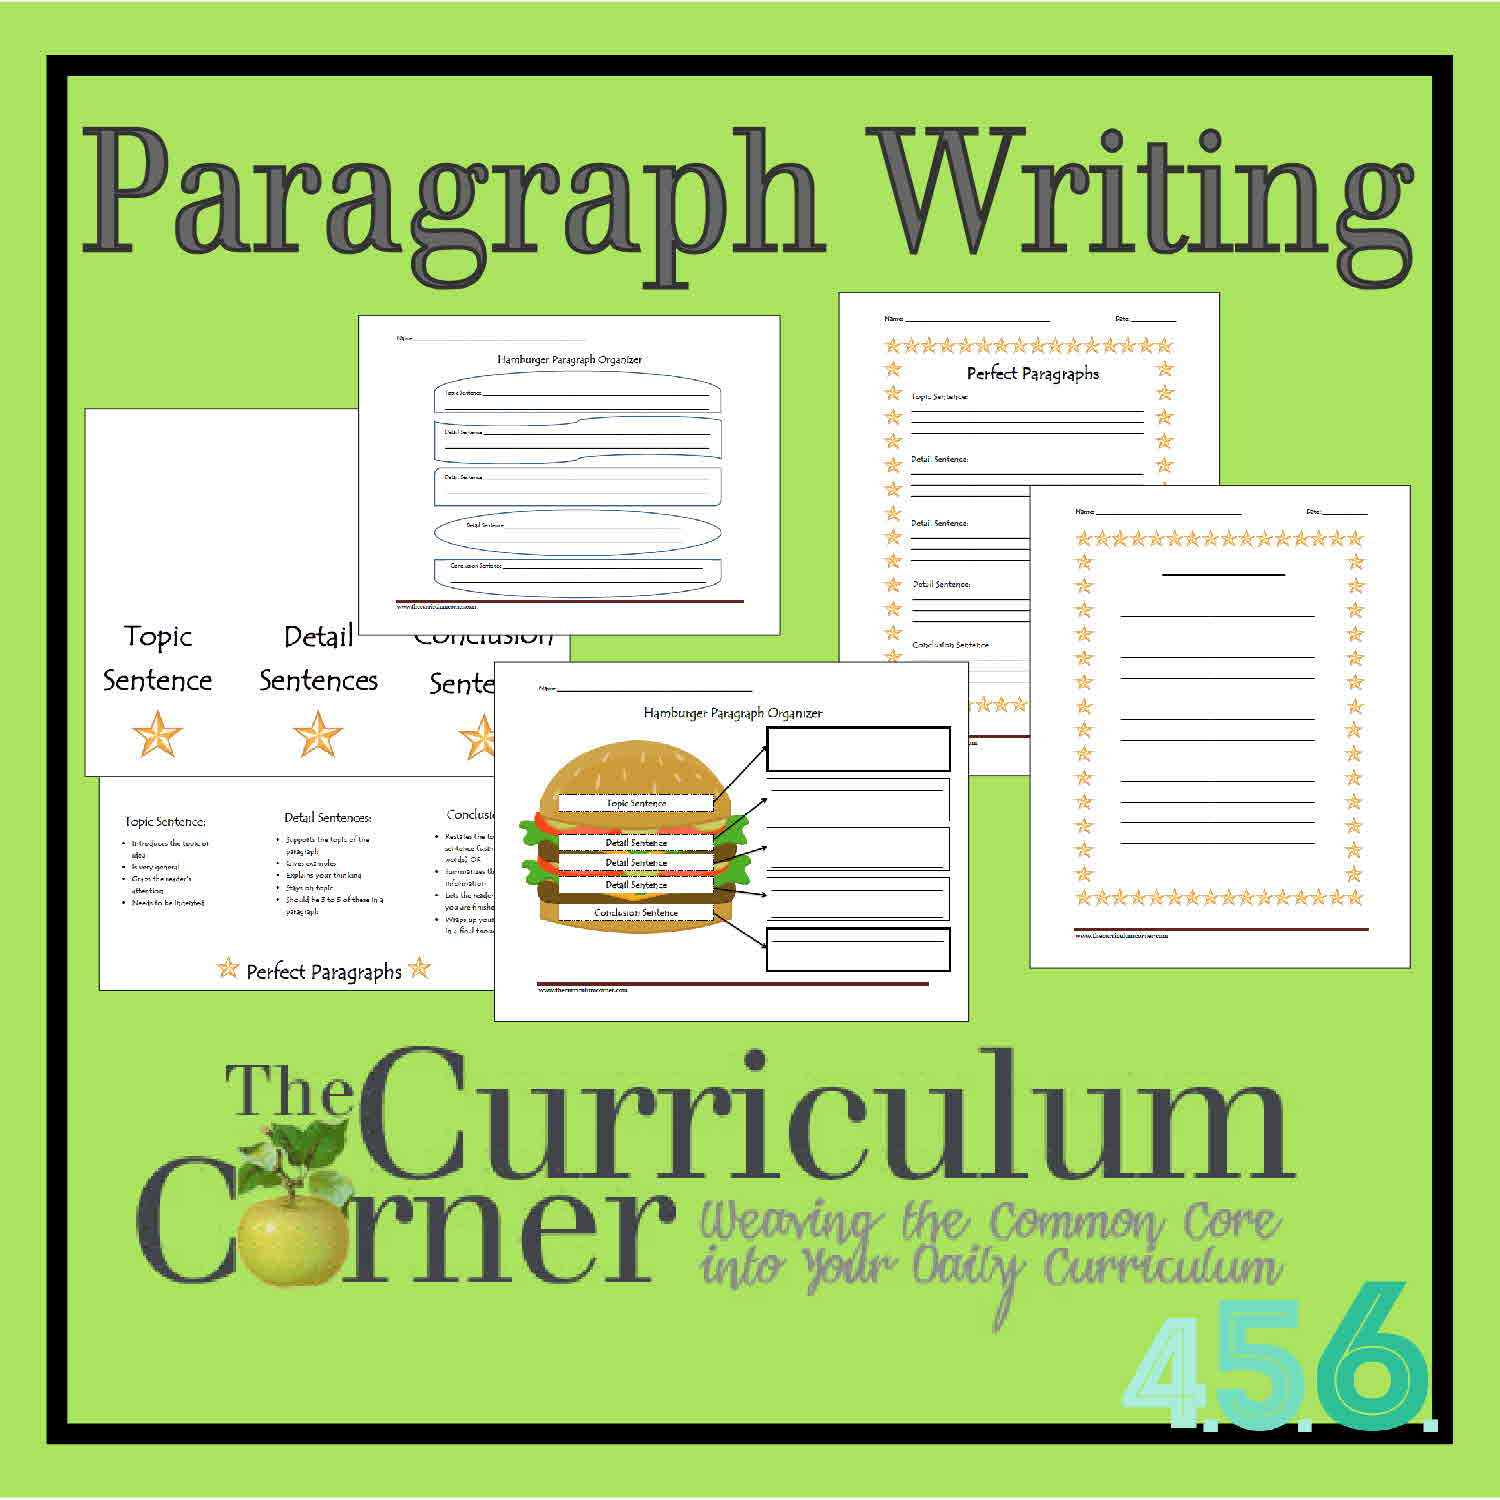 Paragraph Writing - The Curriculum Corner 4-5-6   Free Printable Paragraph Writing Worksheets